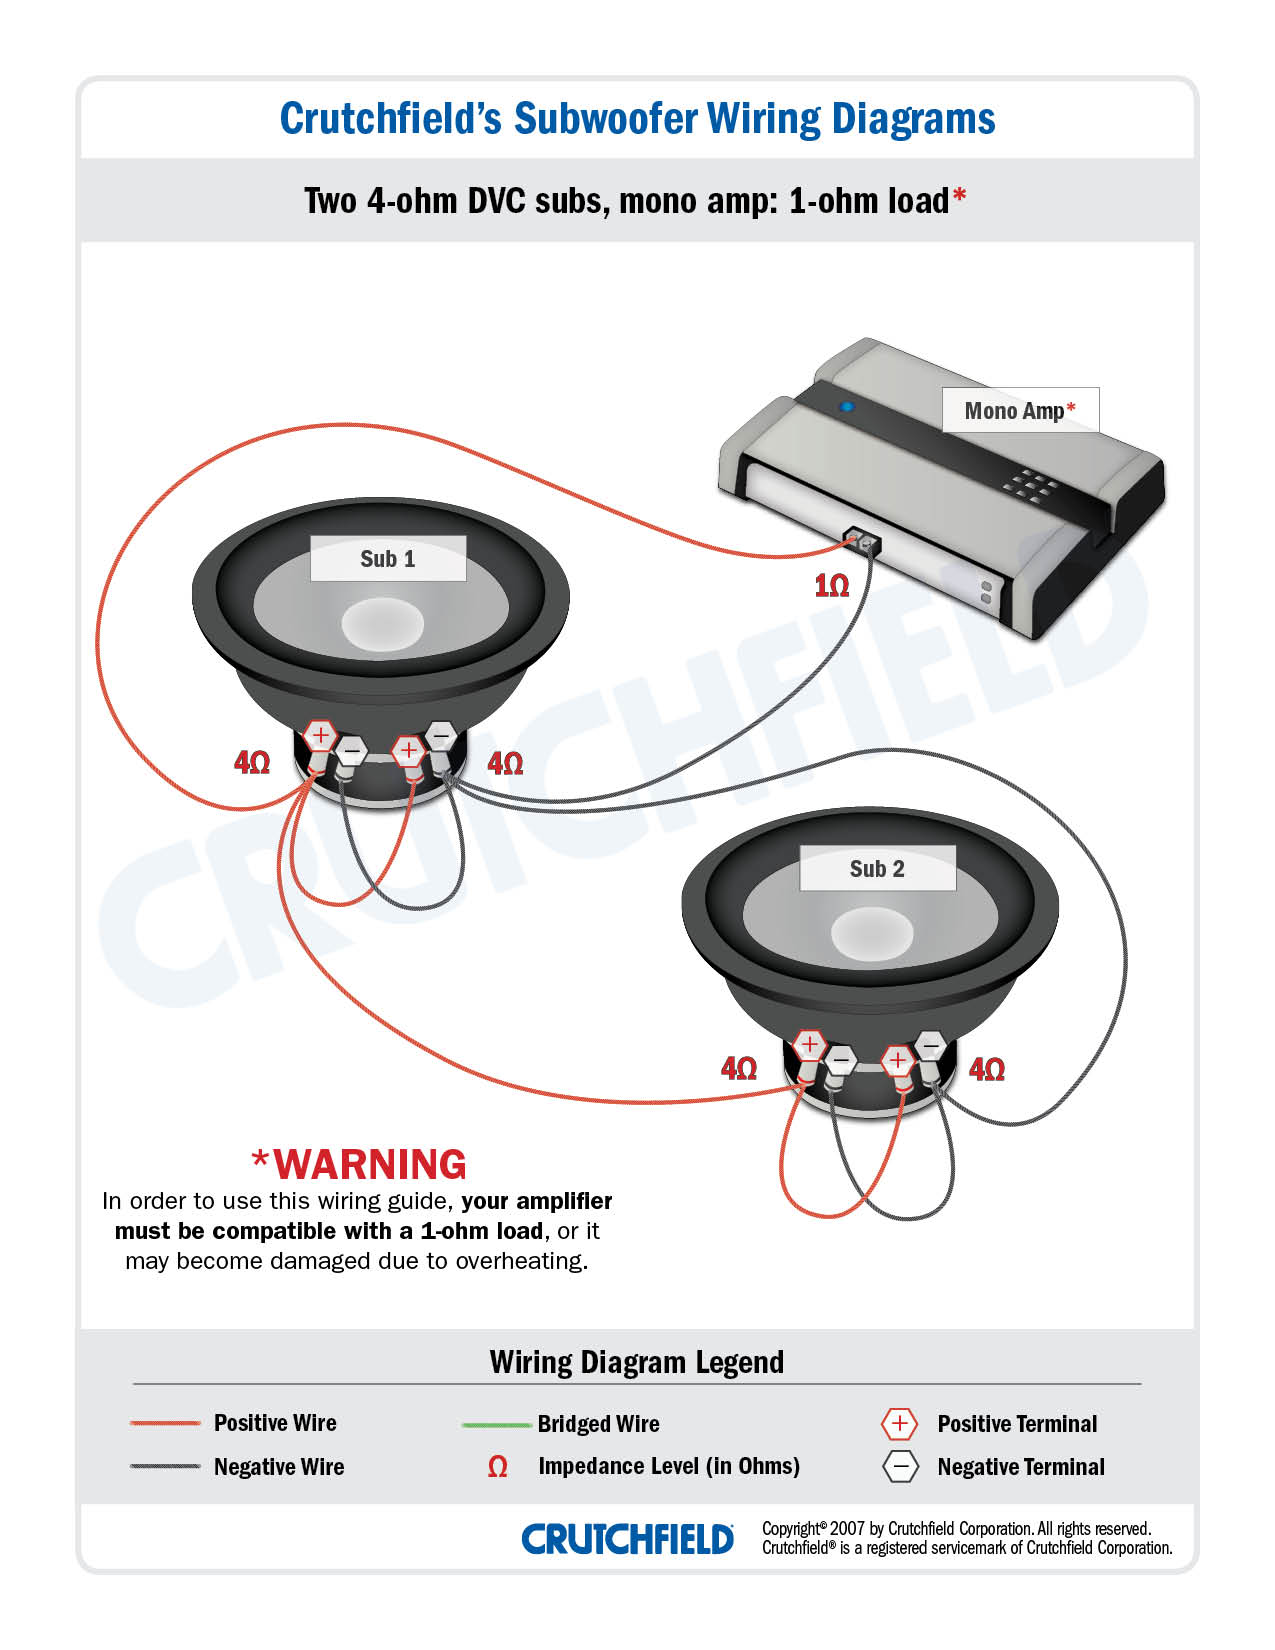 2 ohm dvc wiring diagram wiring diagrams best subwoofer wiring diagrams how to wire your subs 4 4 ohm subwoofer wiring diagram 2 ohm dvc wiring diagram